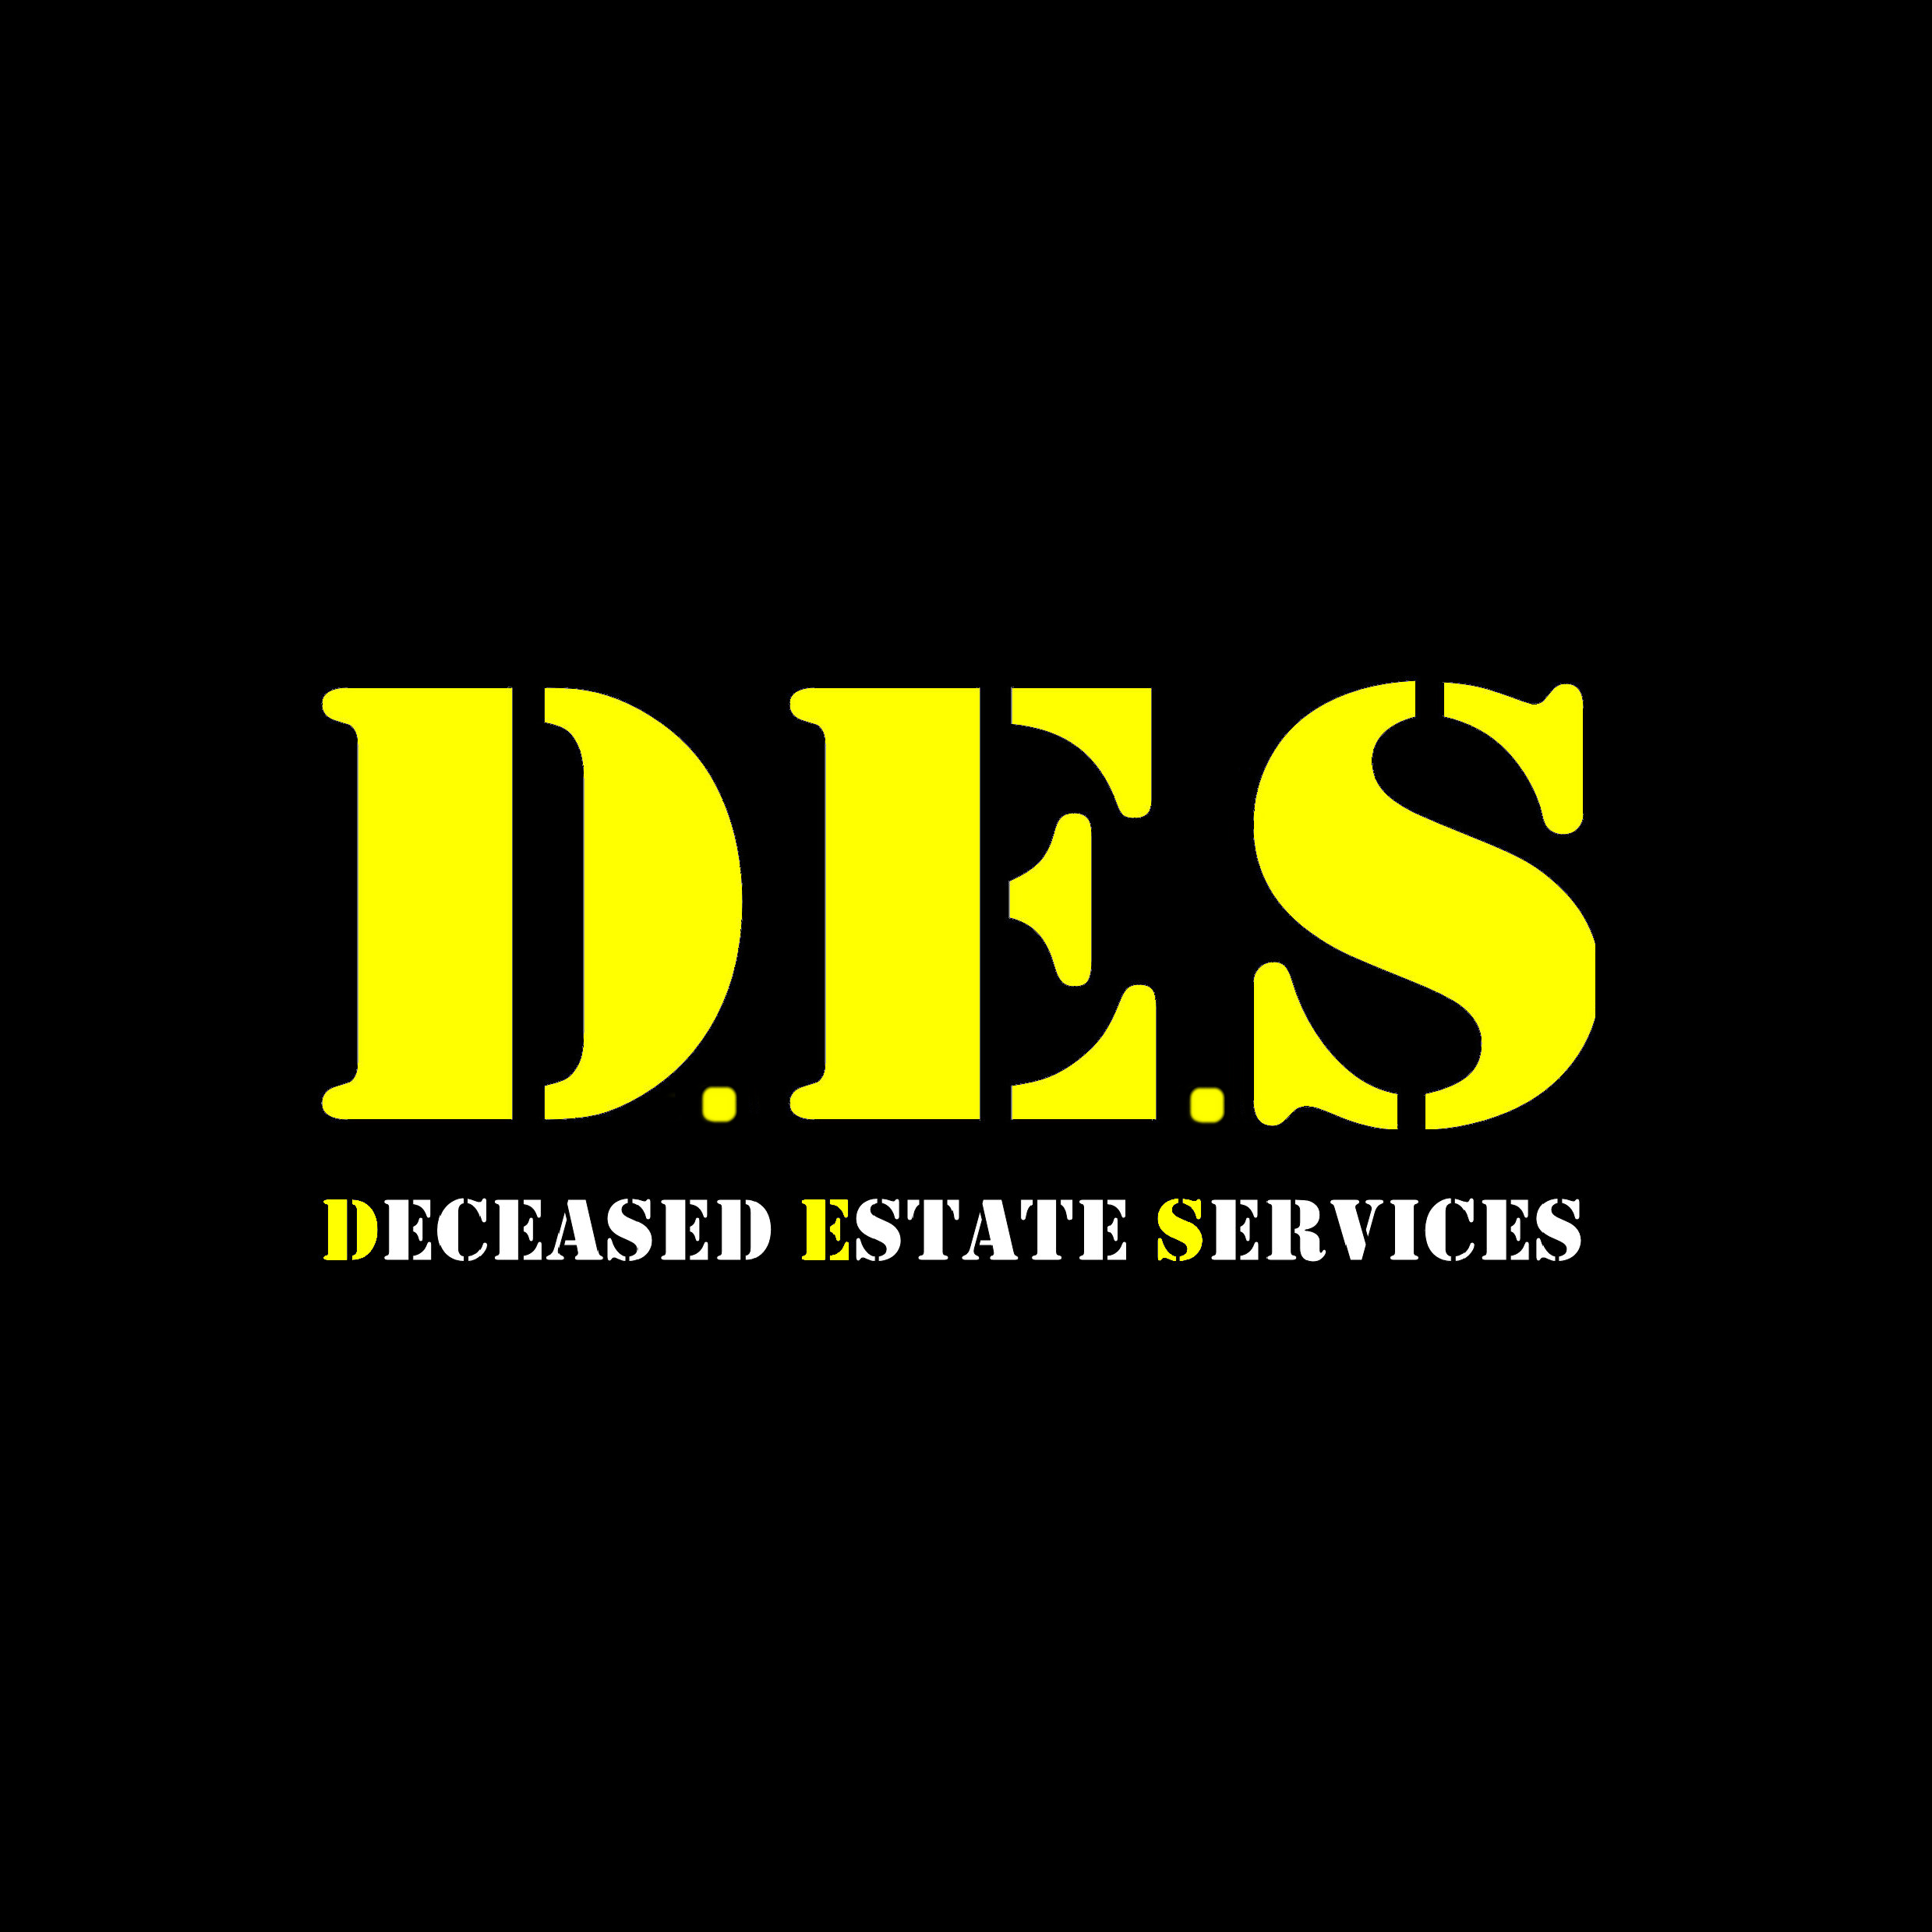 Deceased Estate Services